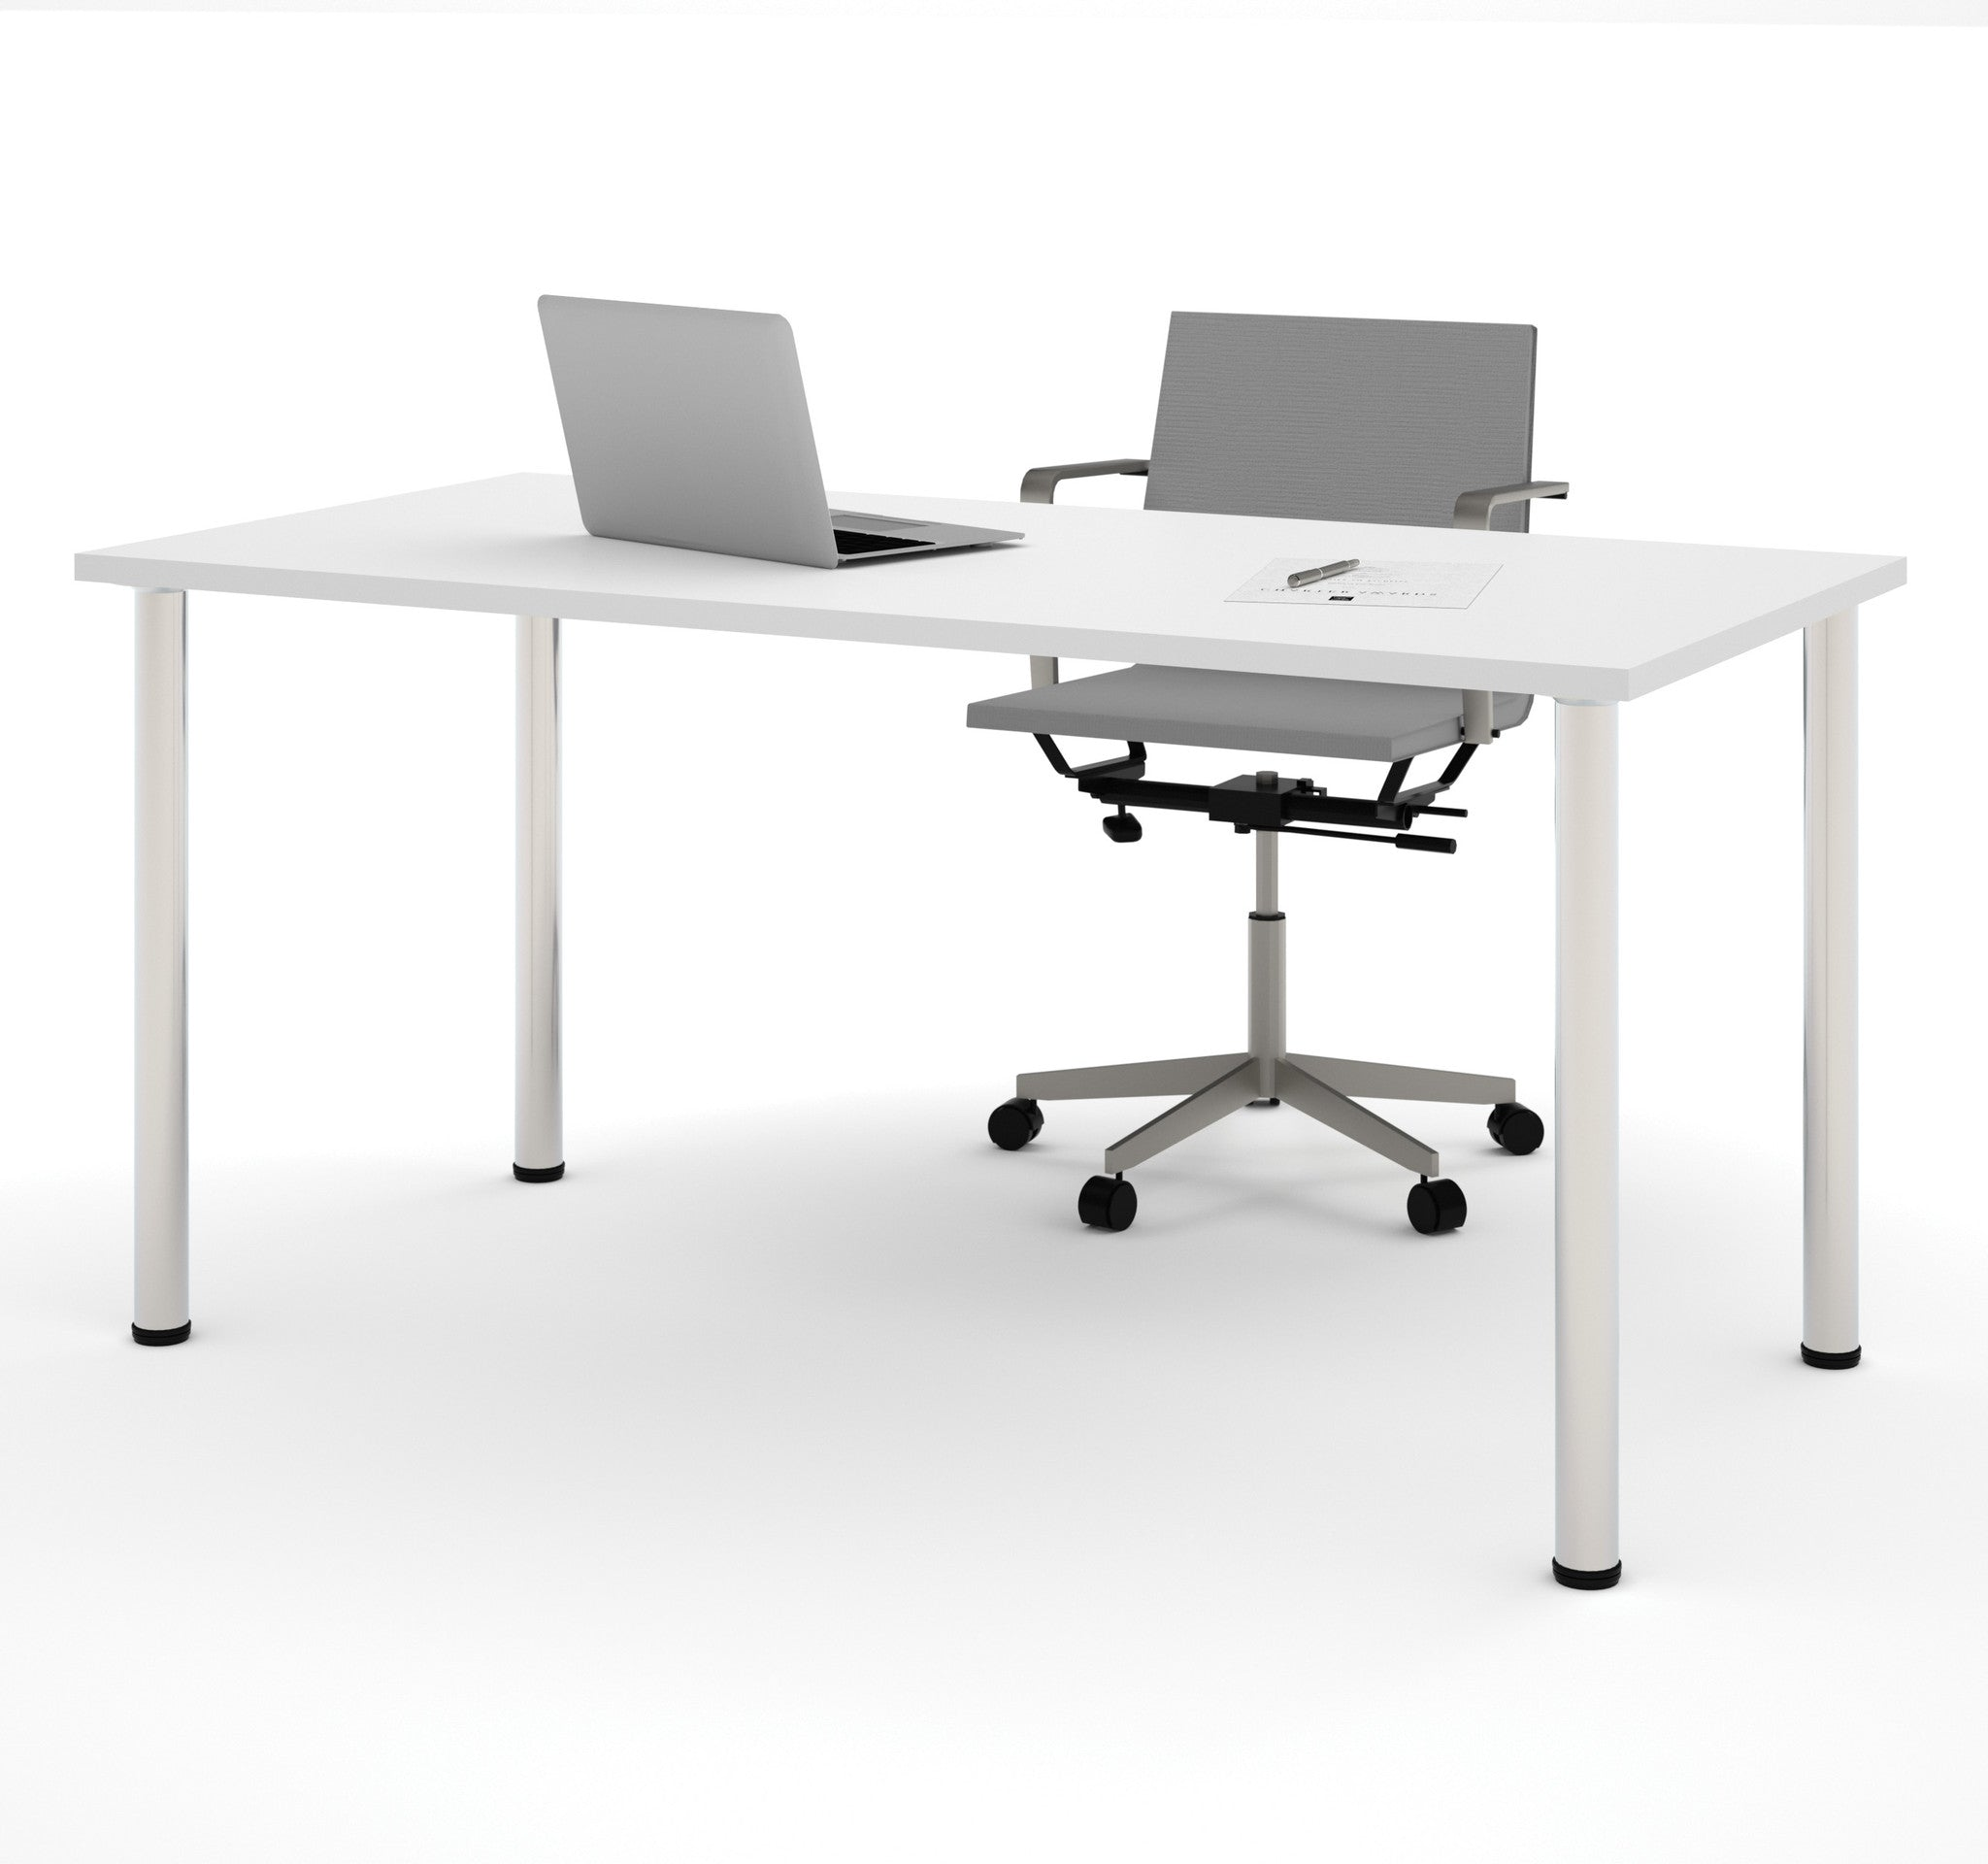 "Modern 60"" Office Desk with Premium White Top & Silver Legs"